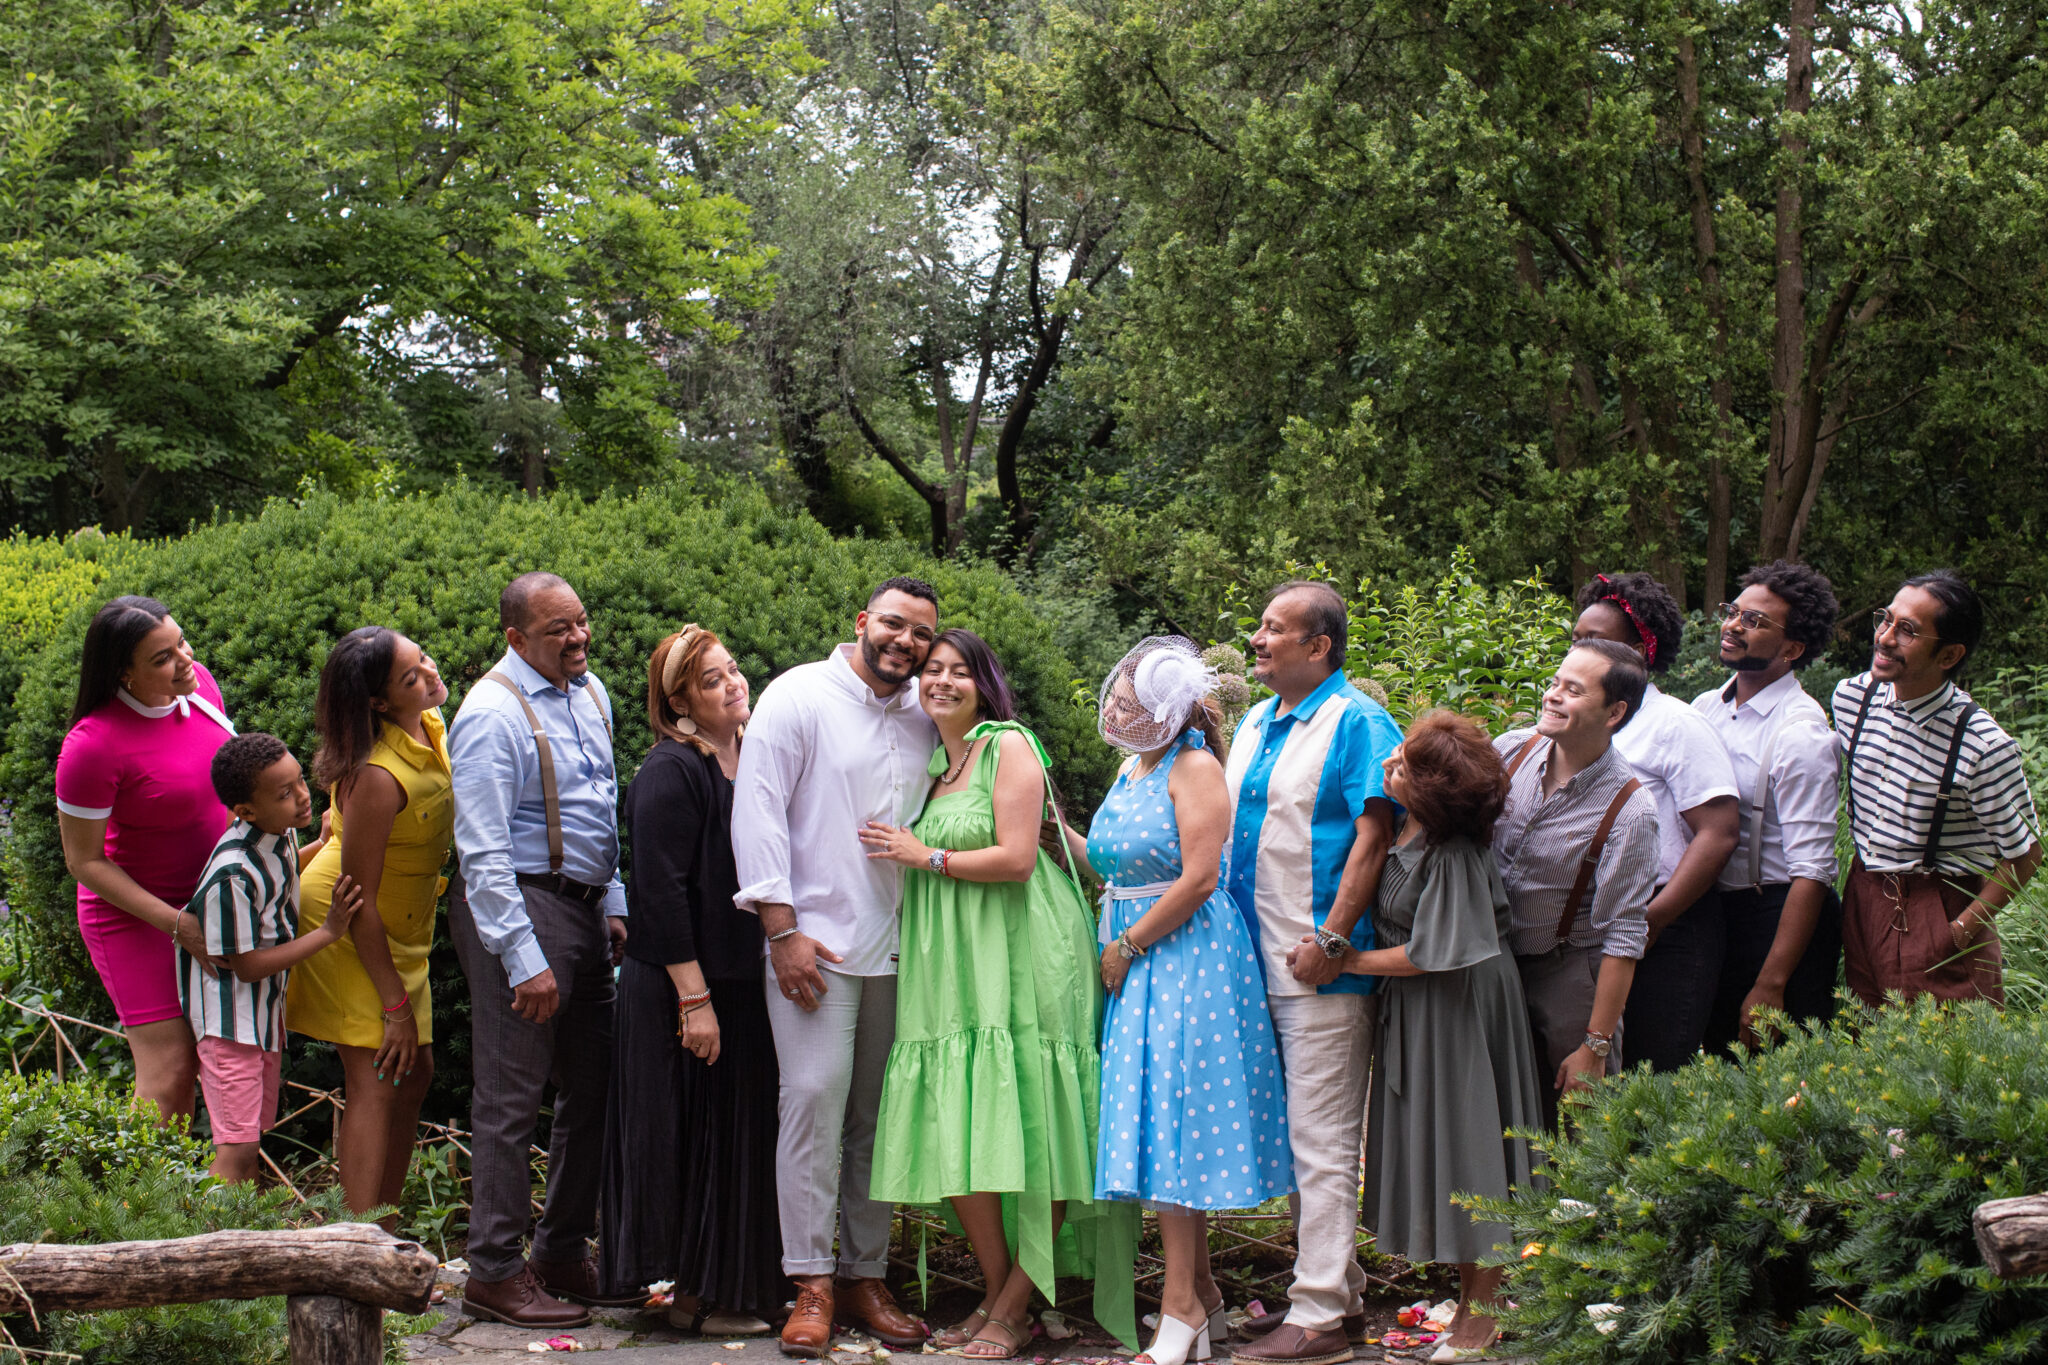 Family celebrating marriage proposal in central park